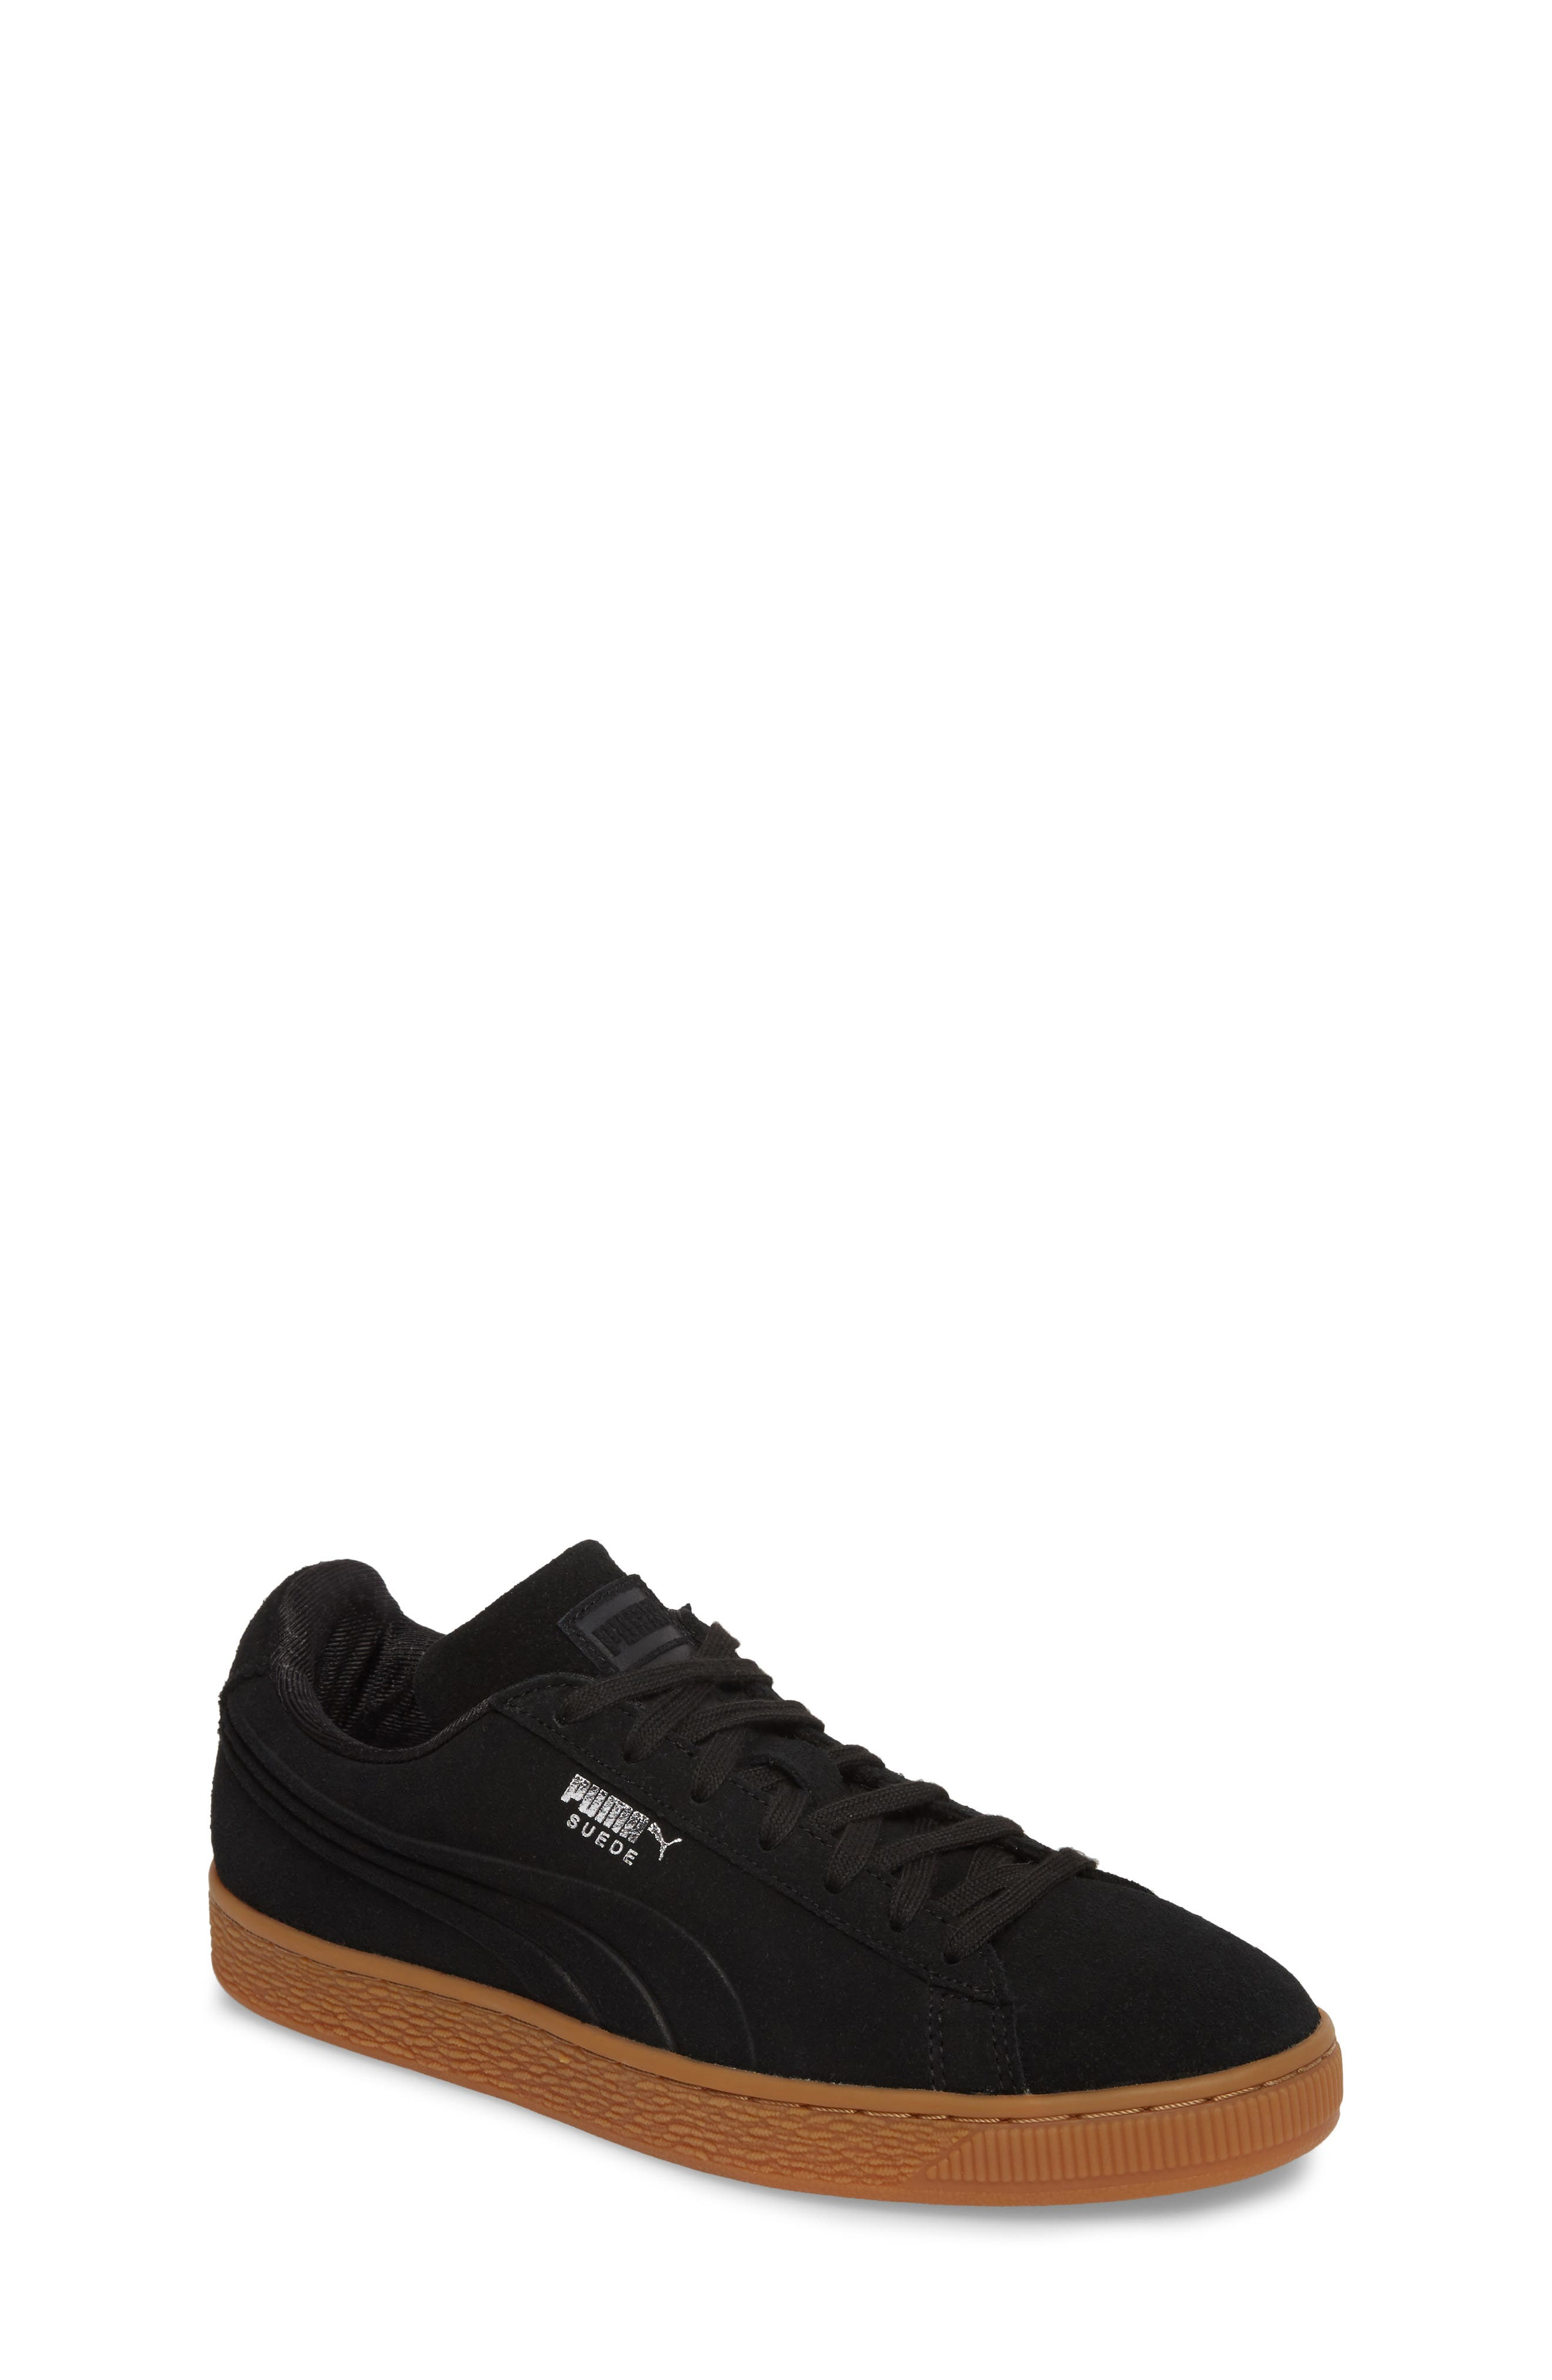 PUMA Suede Classic Debossed Jr. Sneaker (Big Kid)